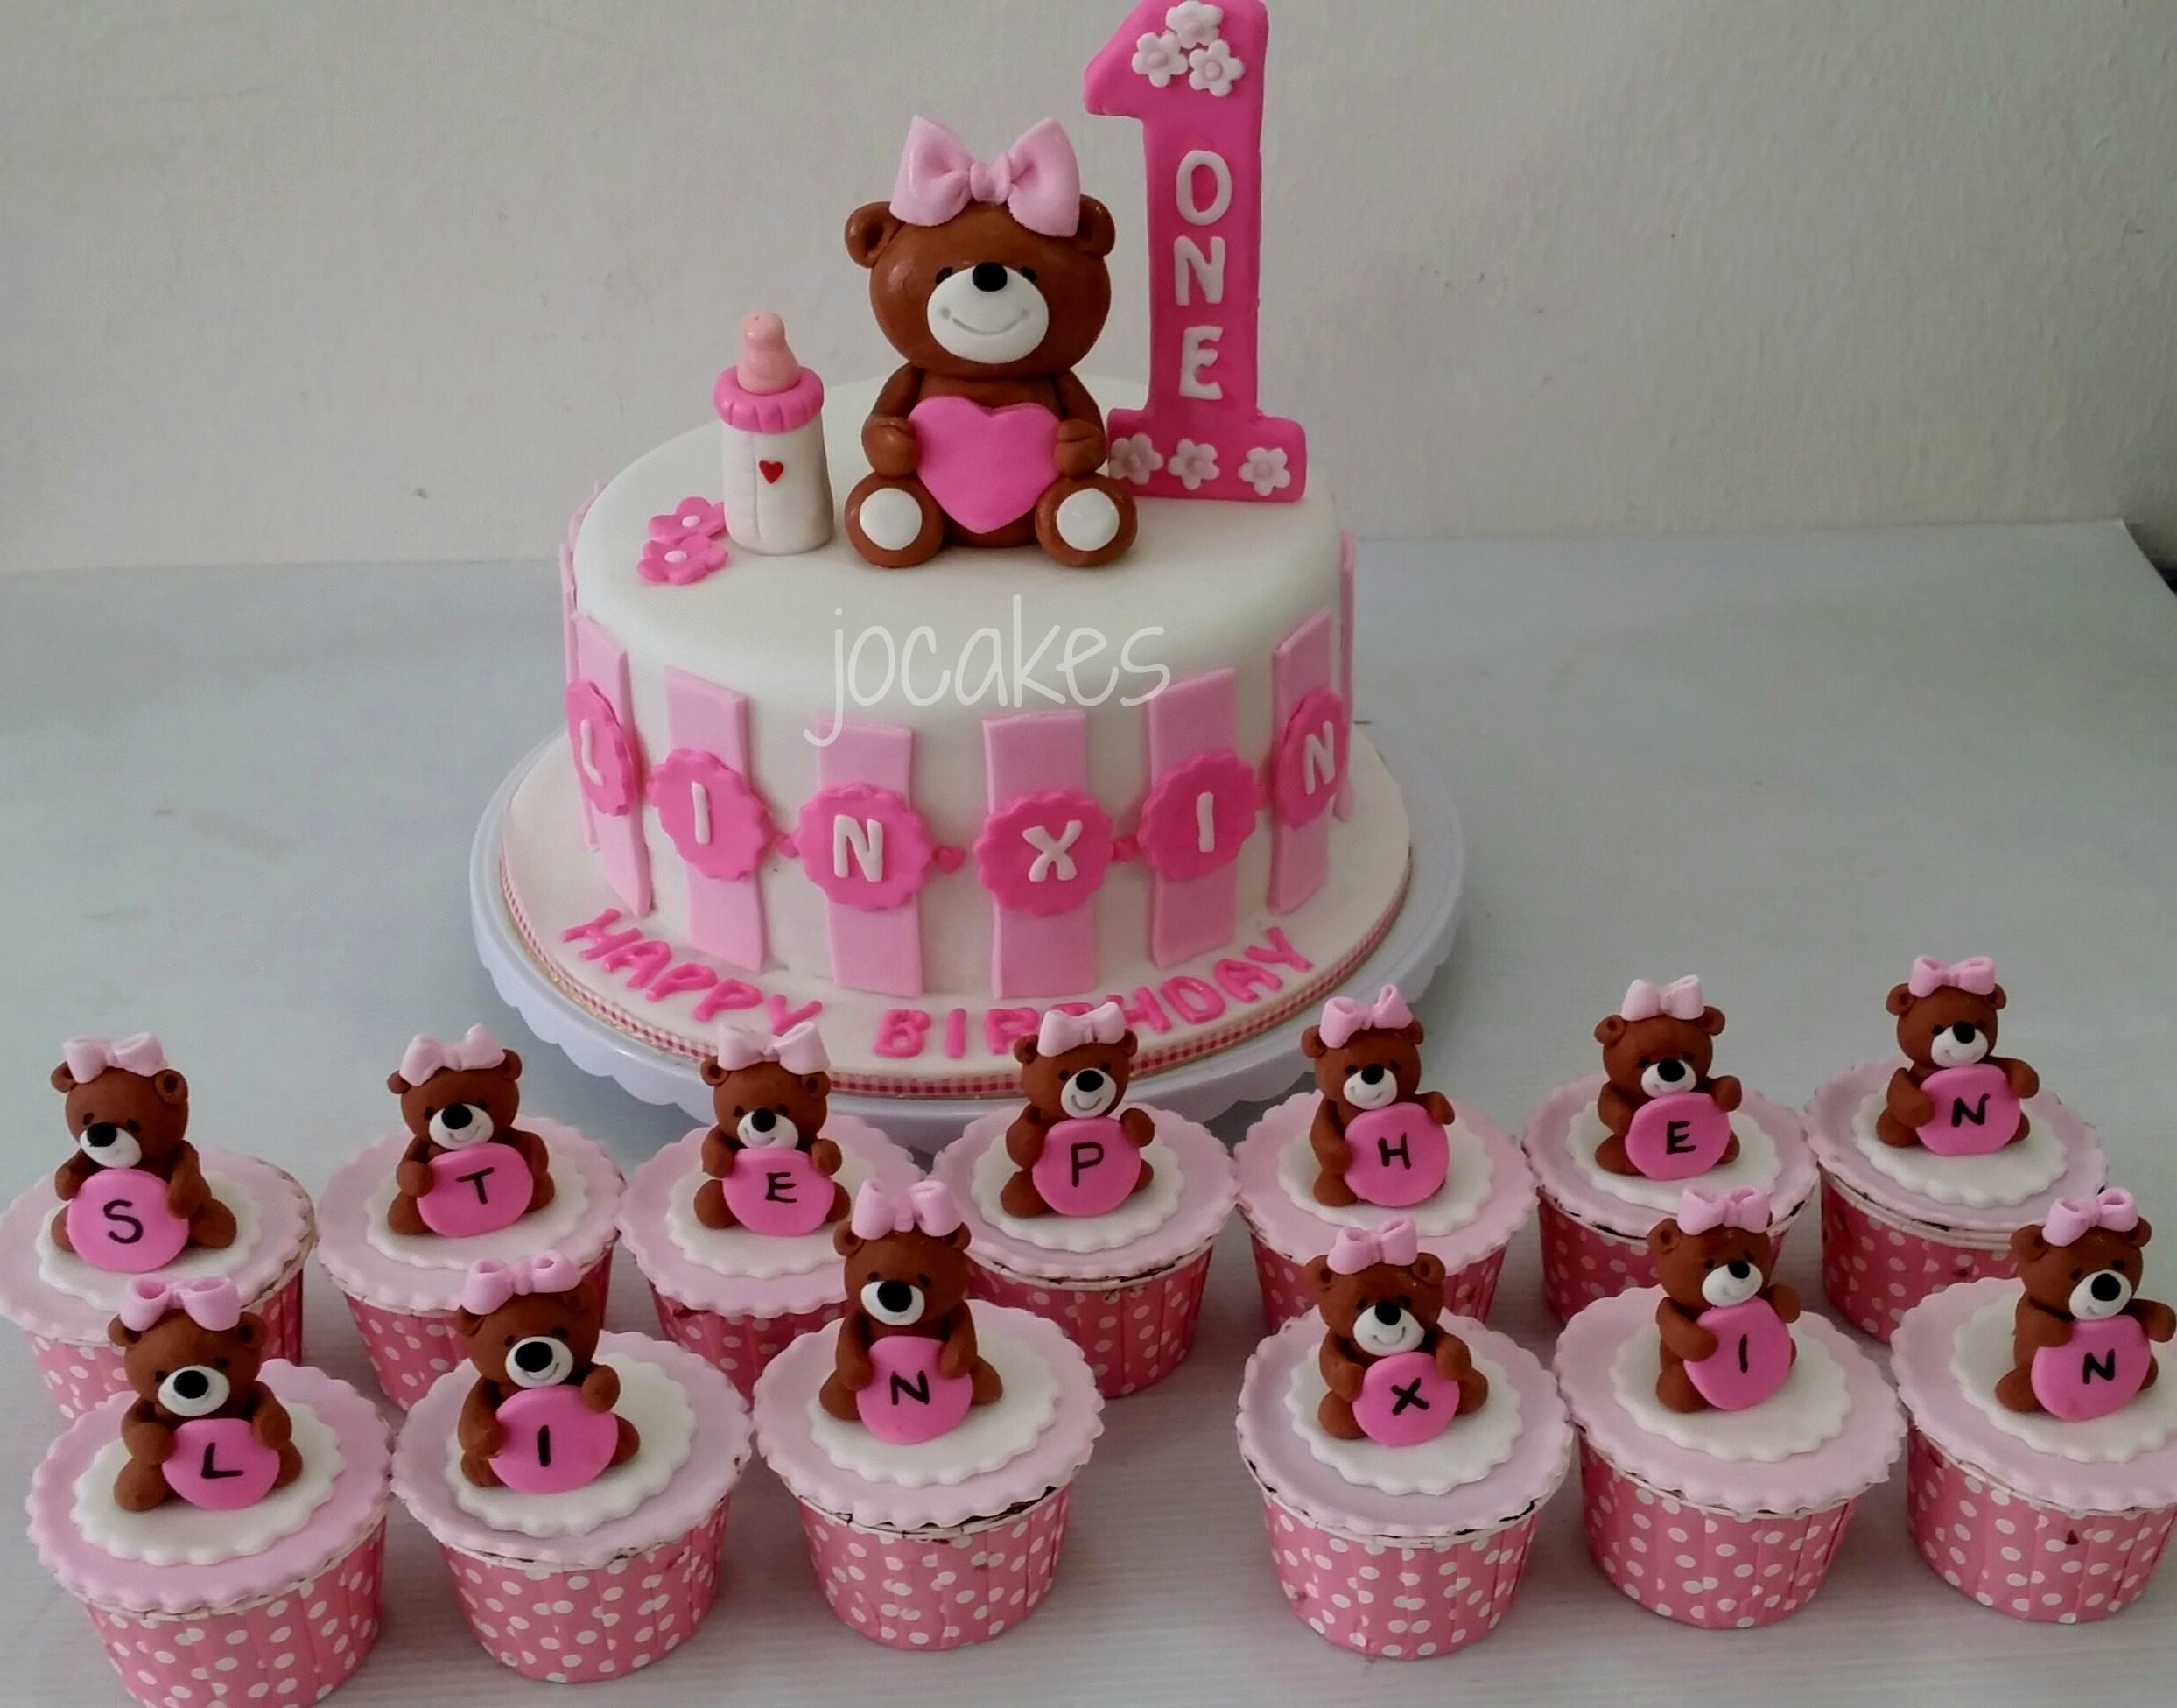 Cake Design For 2 Year Old Baby Girl : Birthday Cake For A Year Old Baby Girl Birthday cake ...